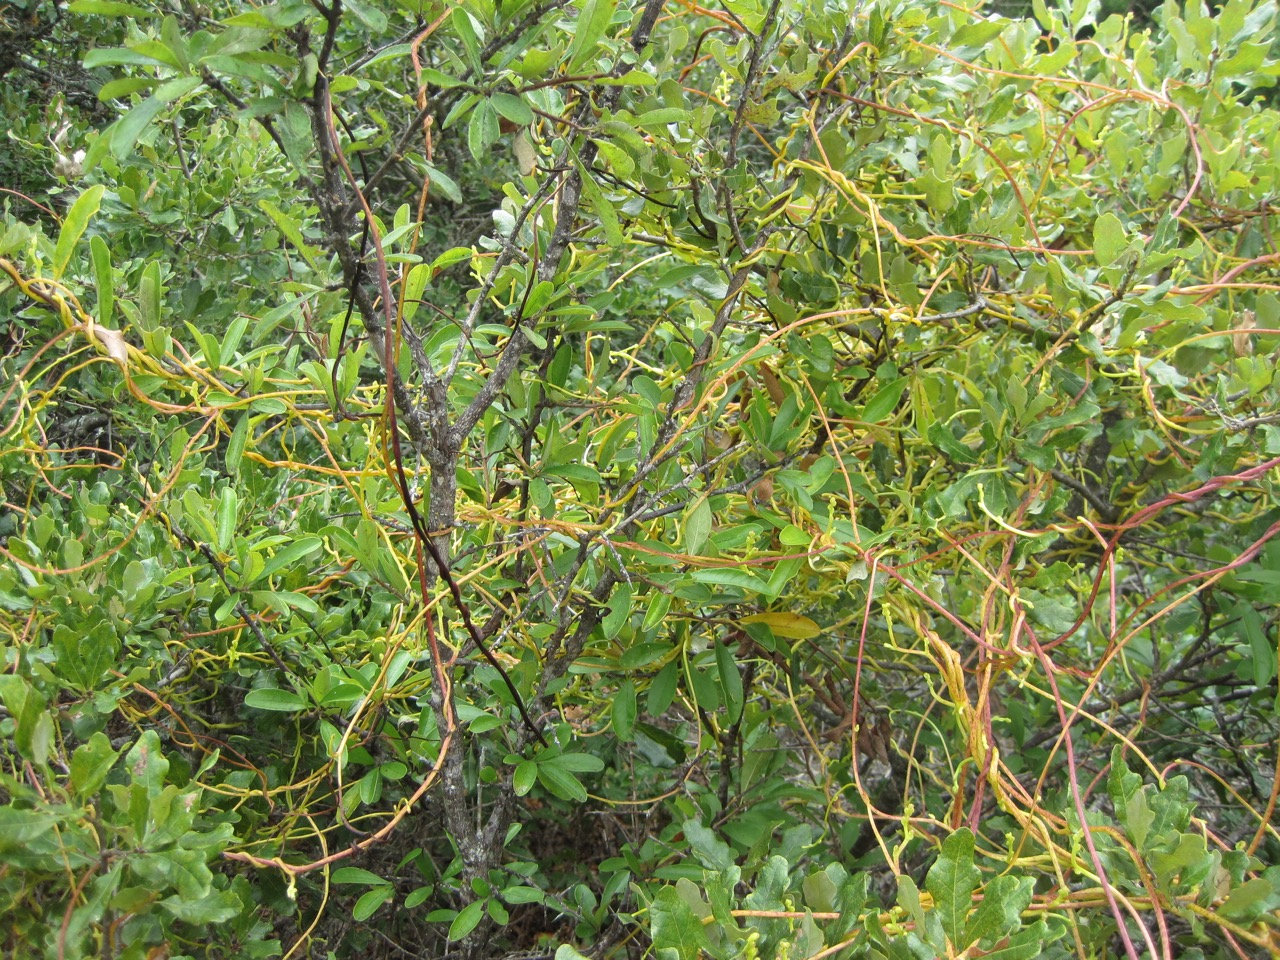 Tree dodder formed tangles in the shinnery oaks, making it necessary to trim branches of the oaks in order to extract seed.